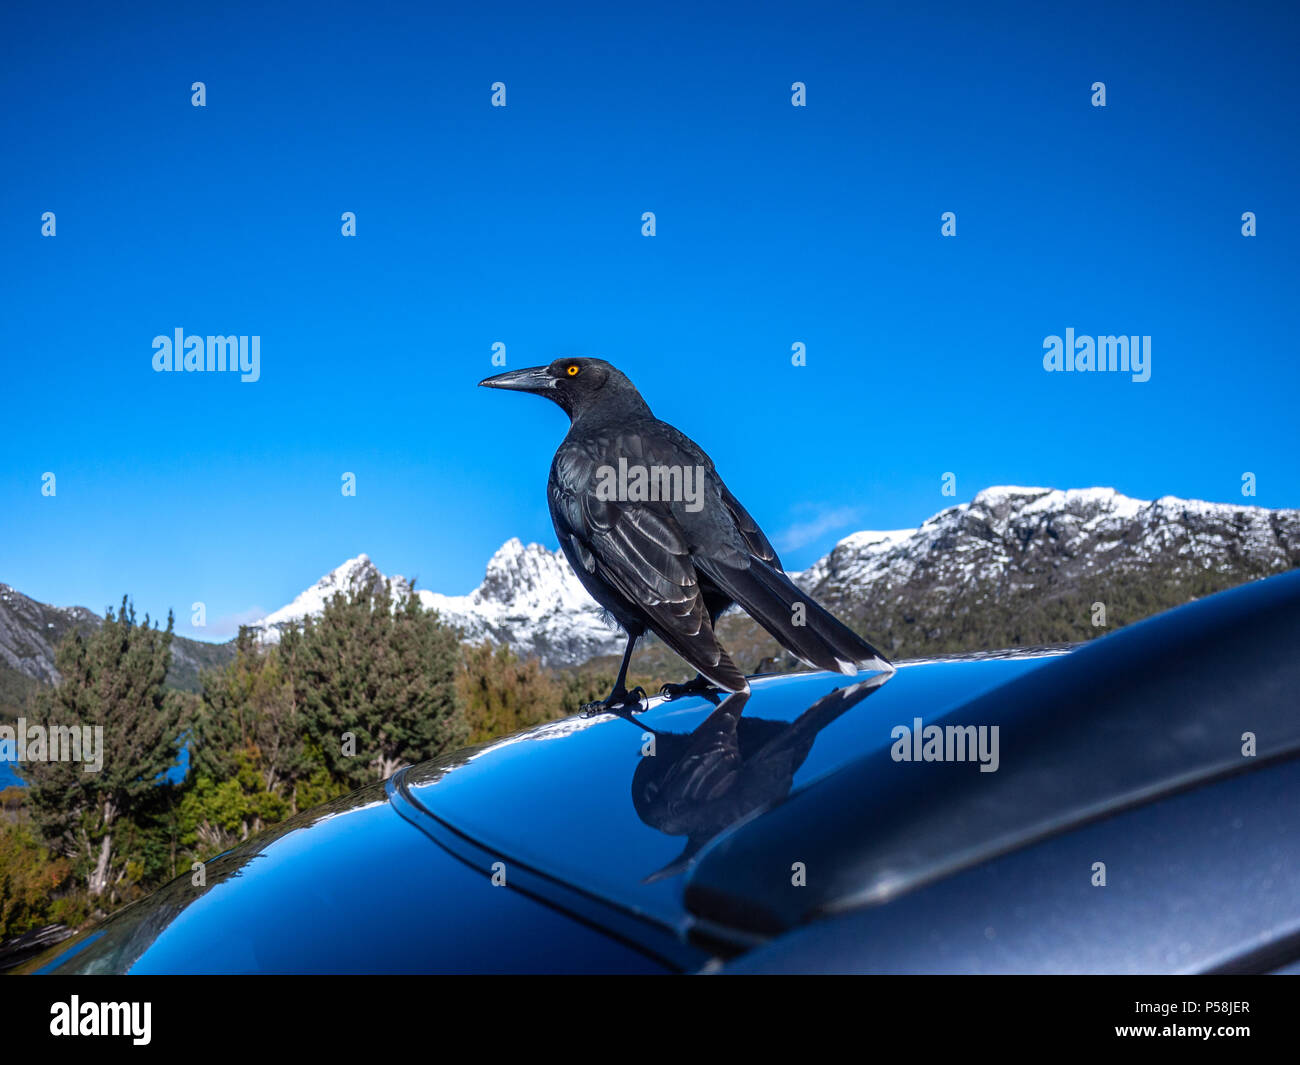 The Black Currawong bird, also known locally as the black jay, standing on top of a car near Dove Lake, with view of Cradle Mountain in distance. Stock Photo